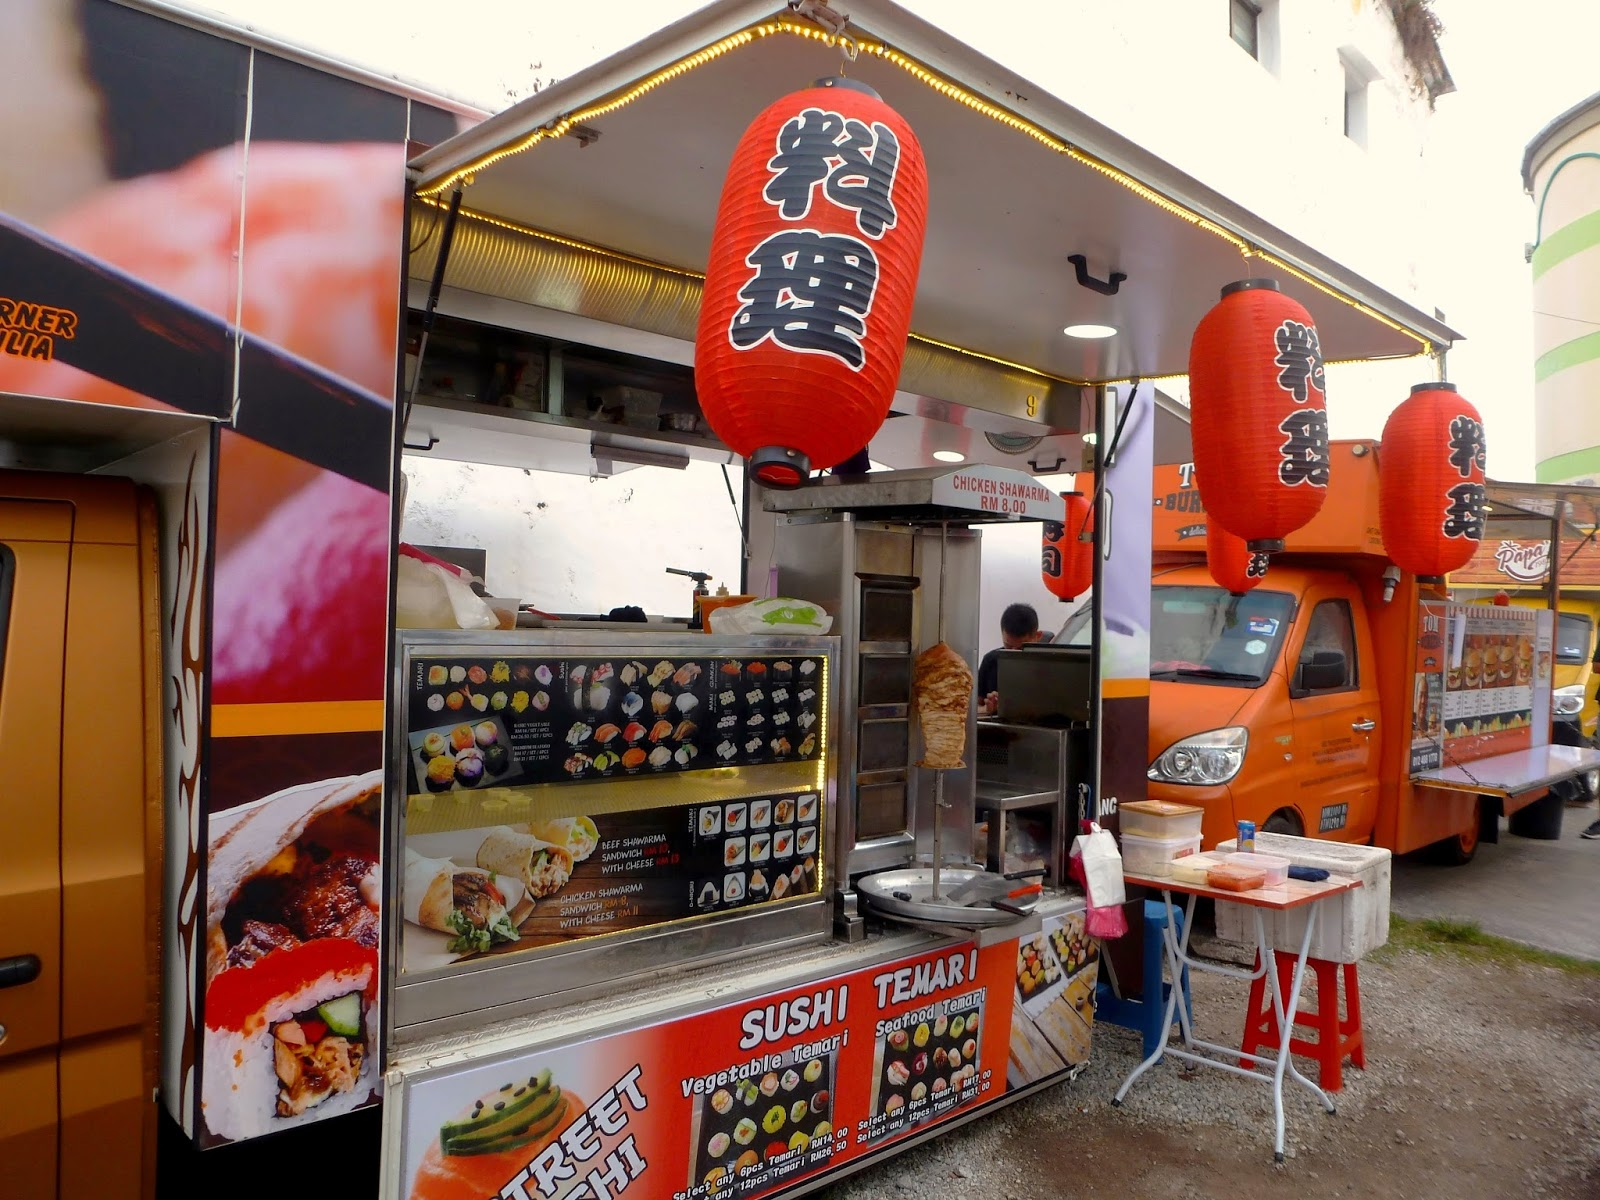 Japanese Cuisine Food Truck Penang Food For Thought Street Sushi